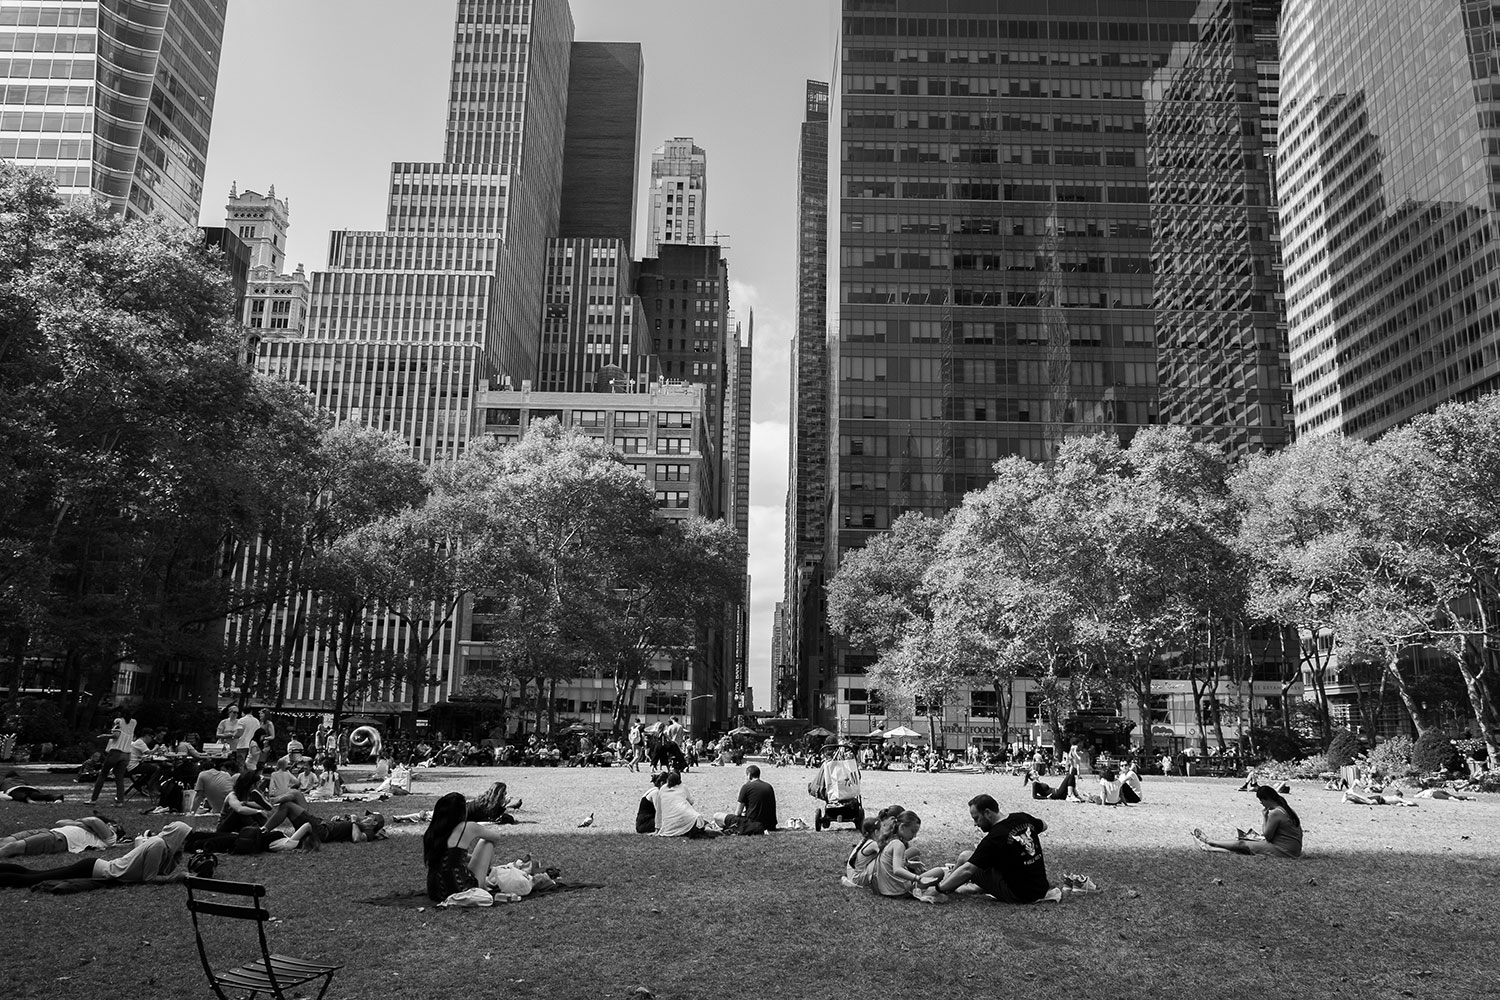 people relax on the lawn at Bryant Park